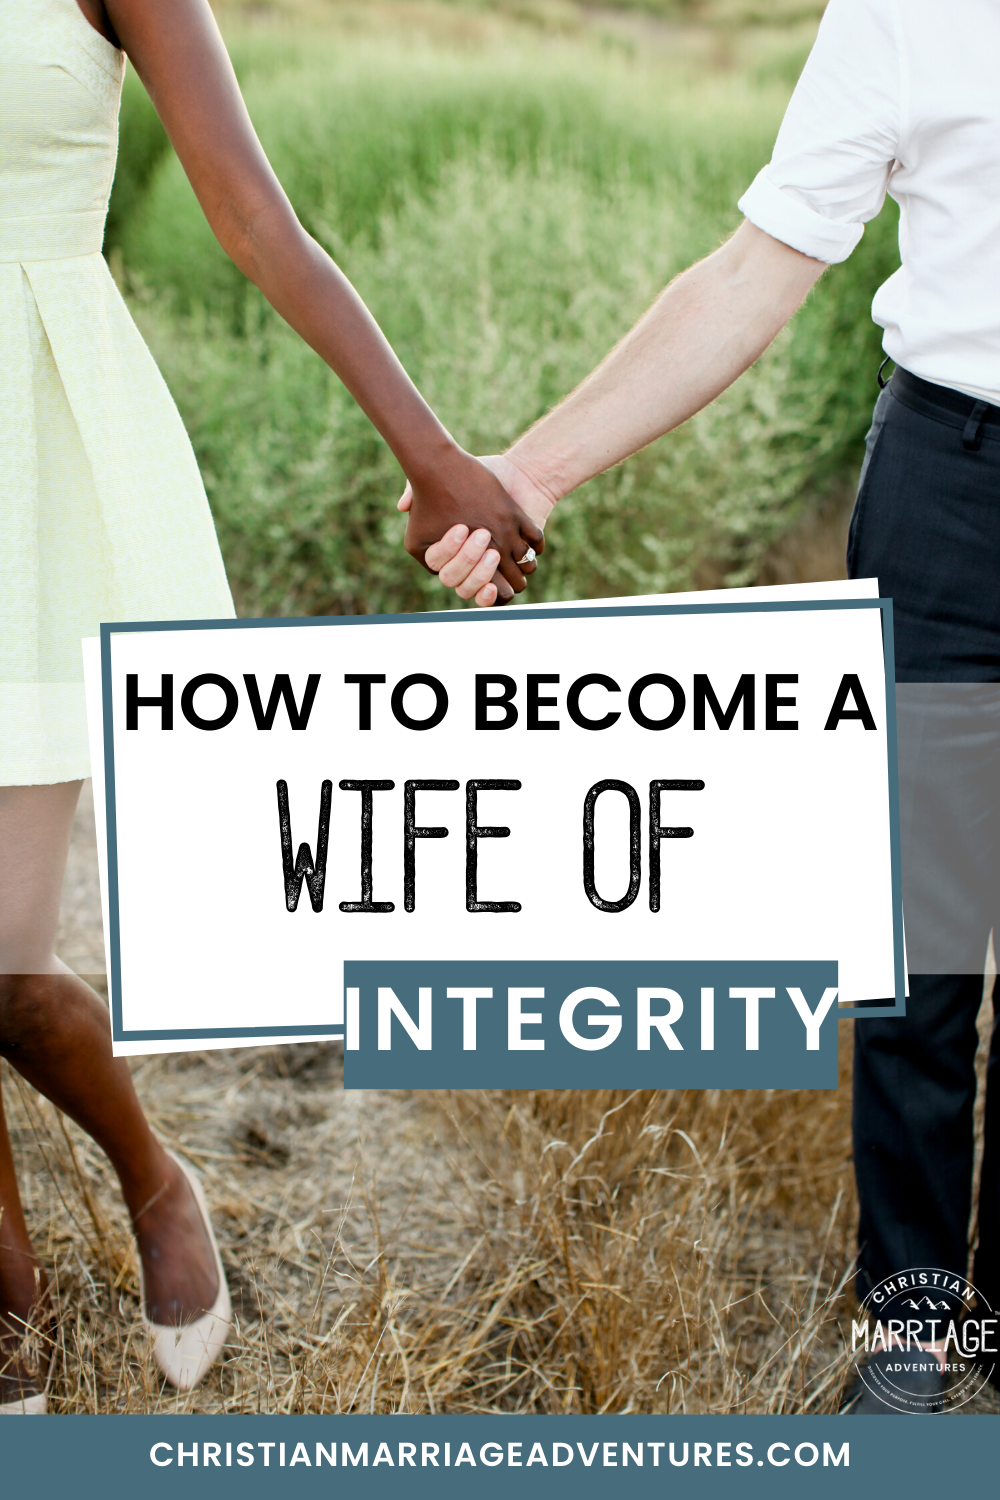 Scripture is filled with both instruction and encouragement to help you become the wife God called you to be - a wife of integrity.